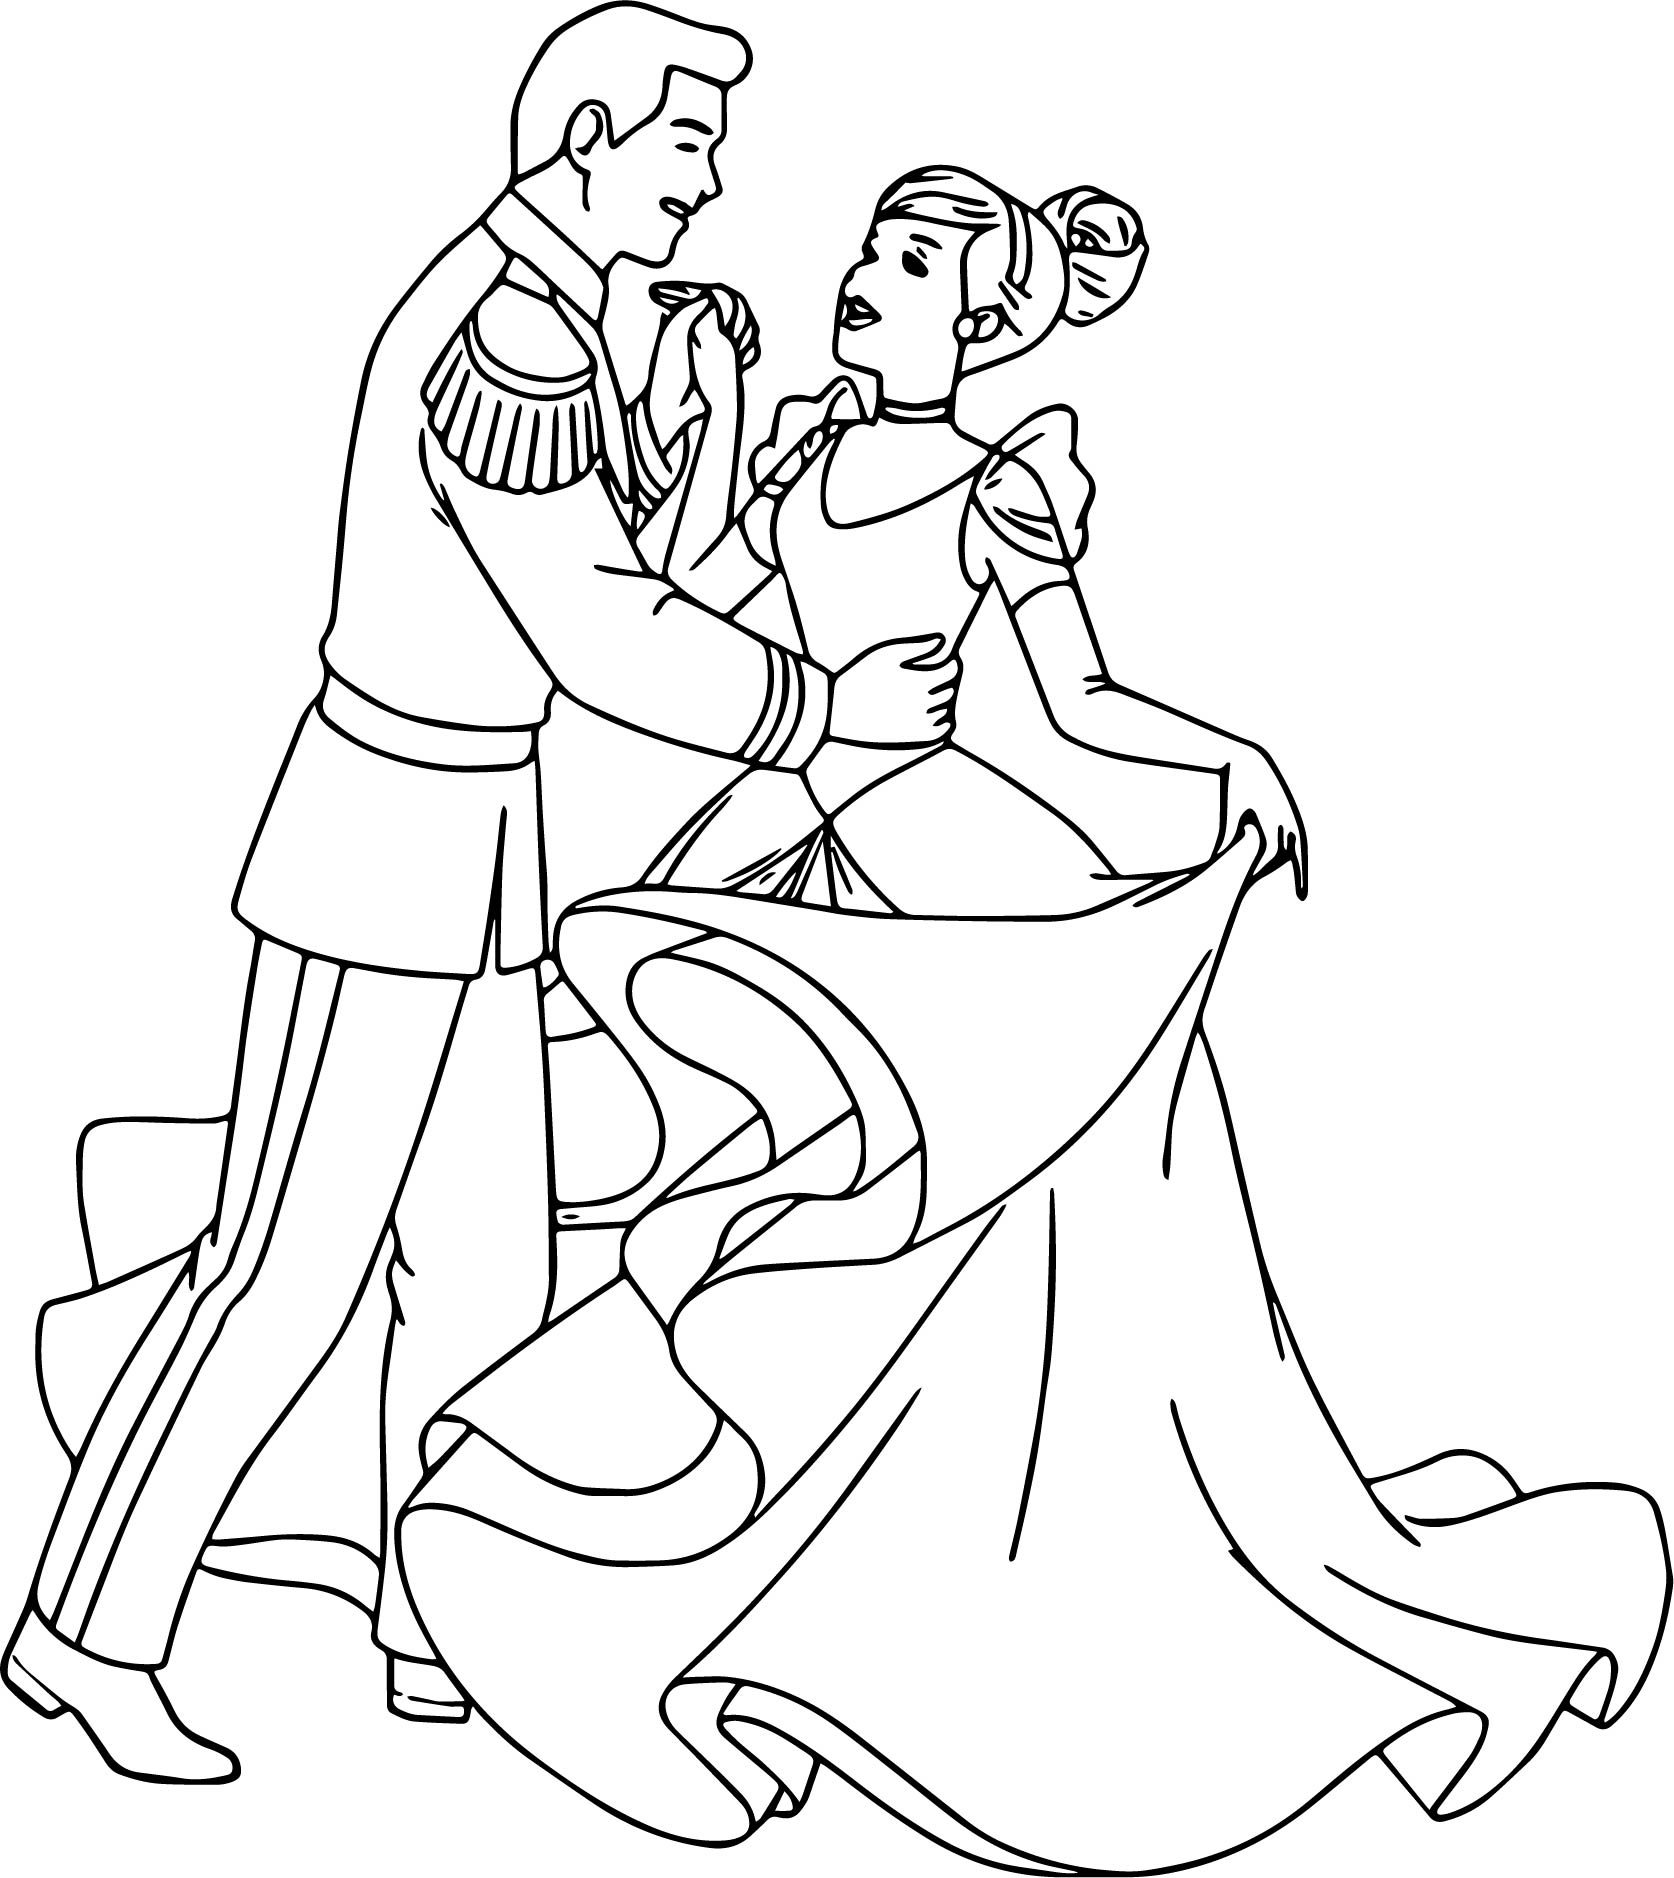 Cinderella And Prince Charming Coloring Pages - Photos Coloring Page ...